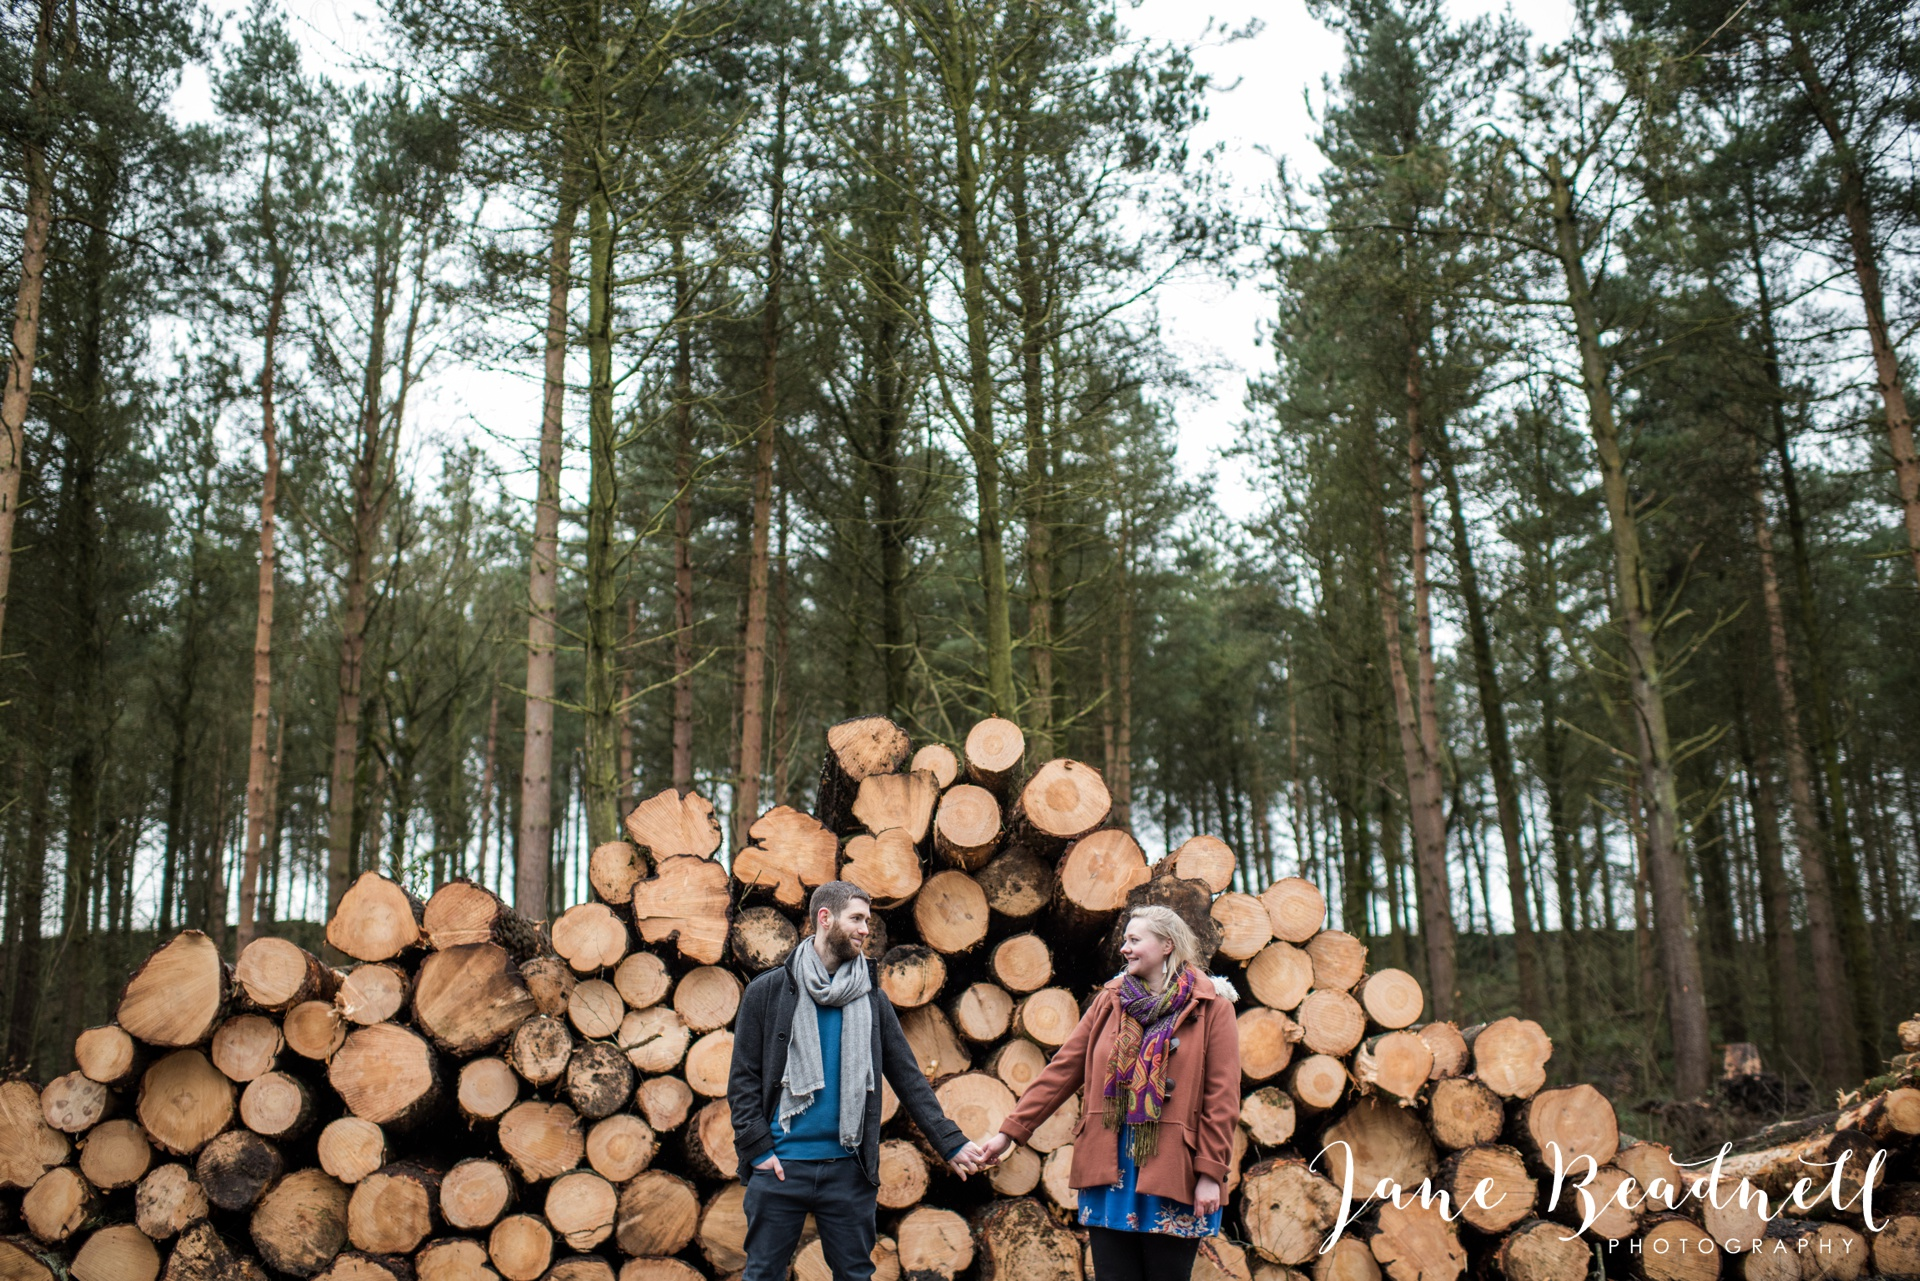 engagement photography Chevin jane beadnell wedding photographer Otley_0018